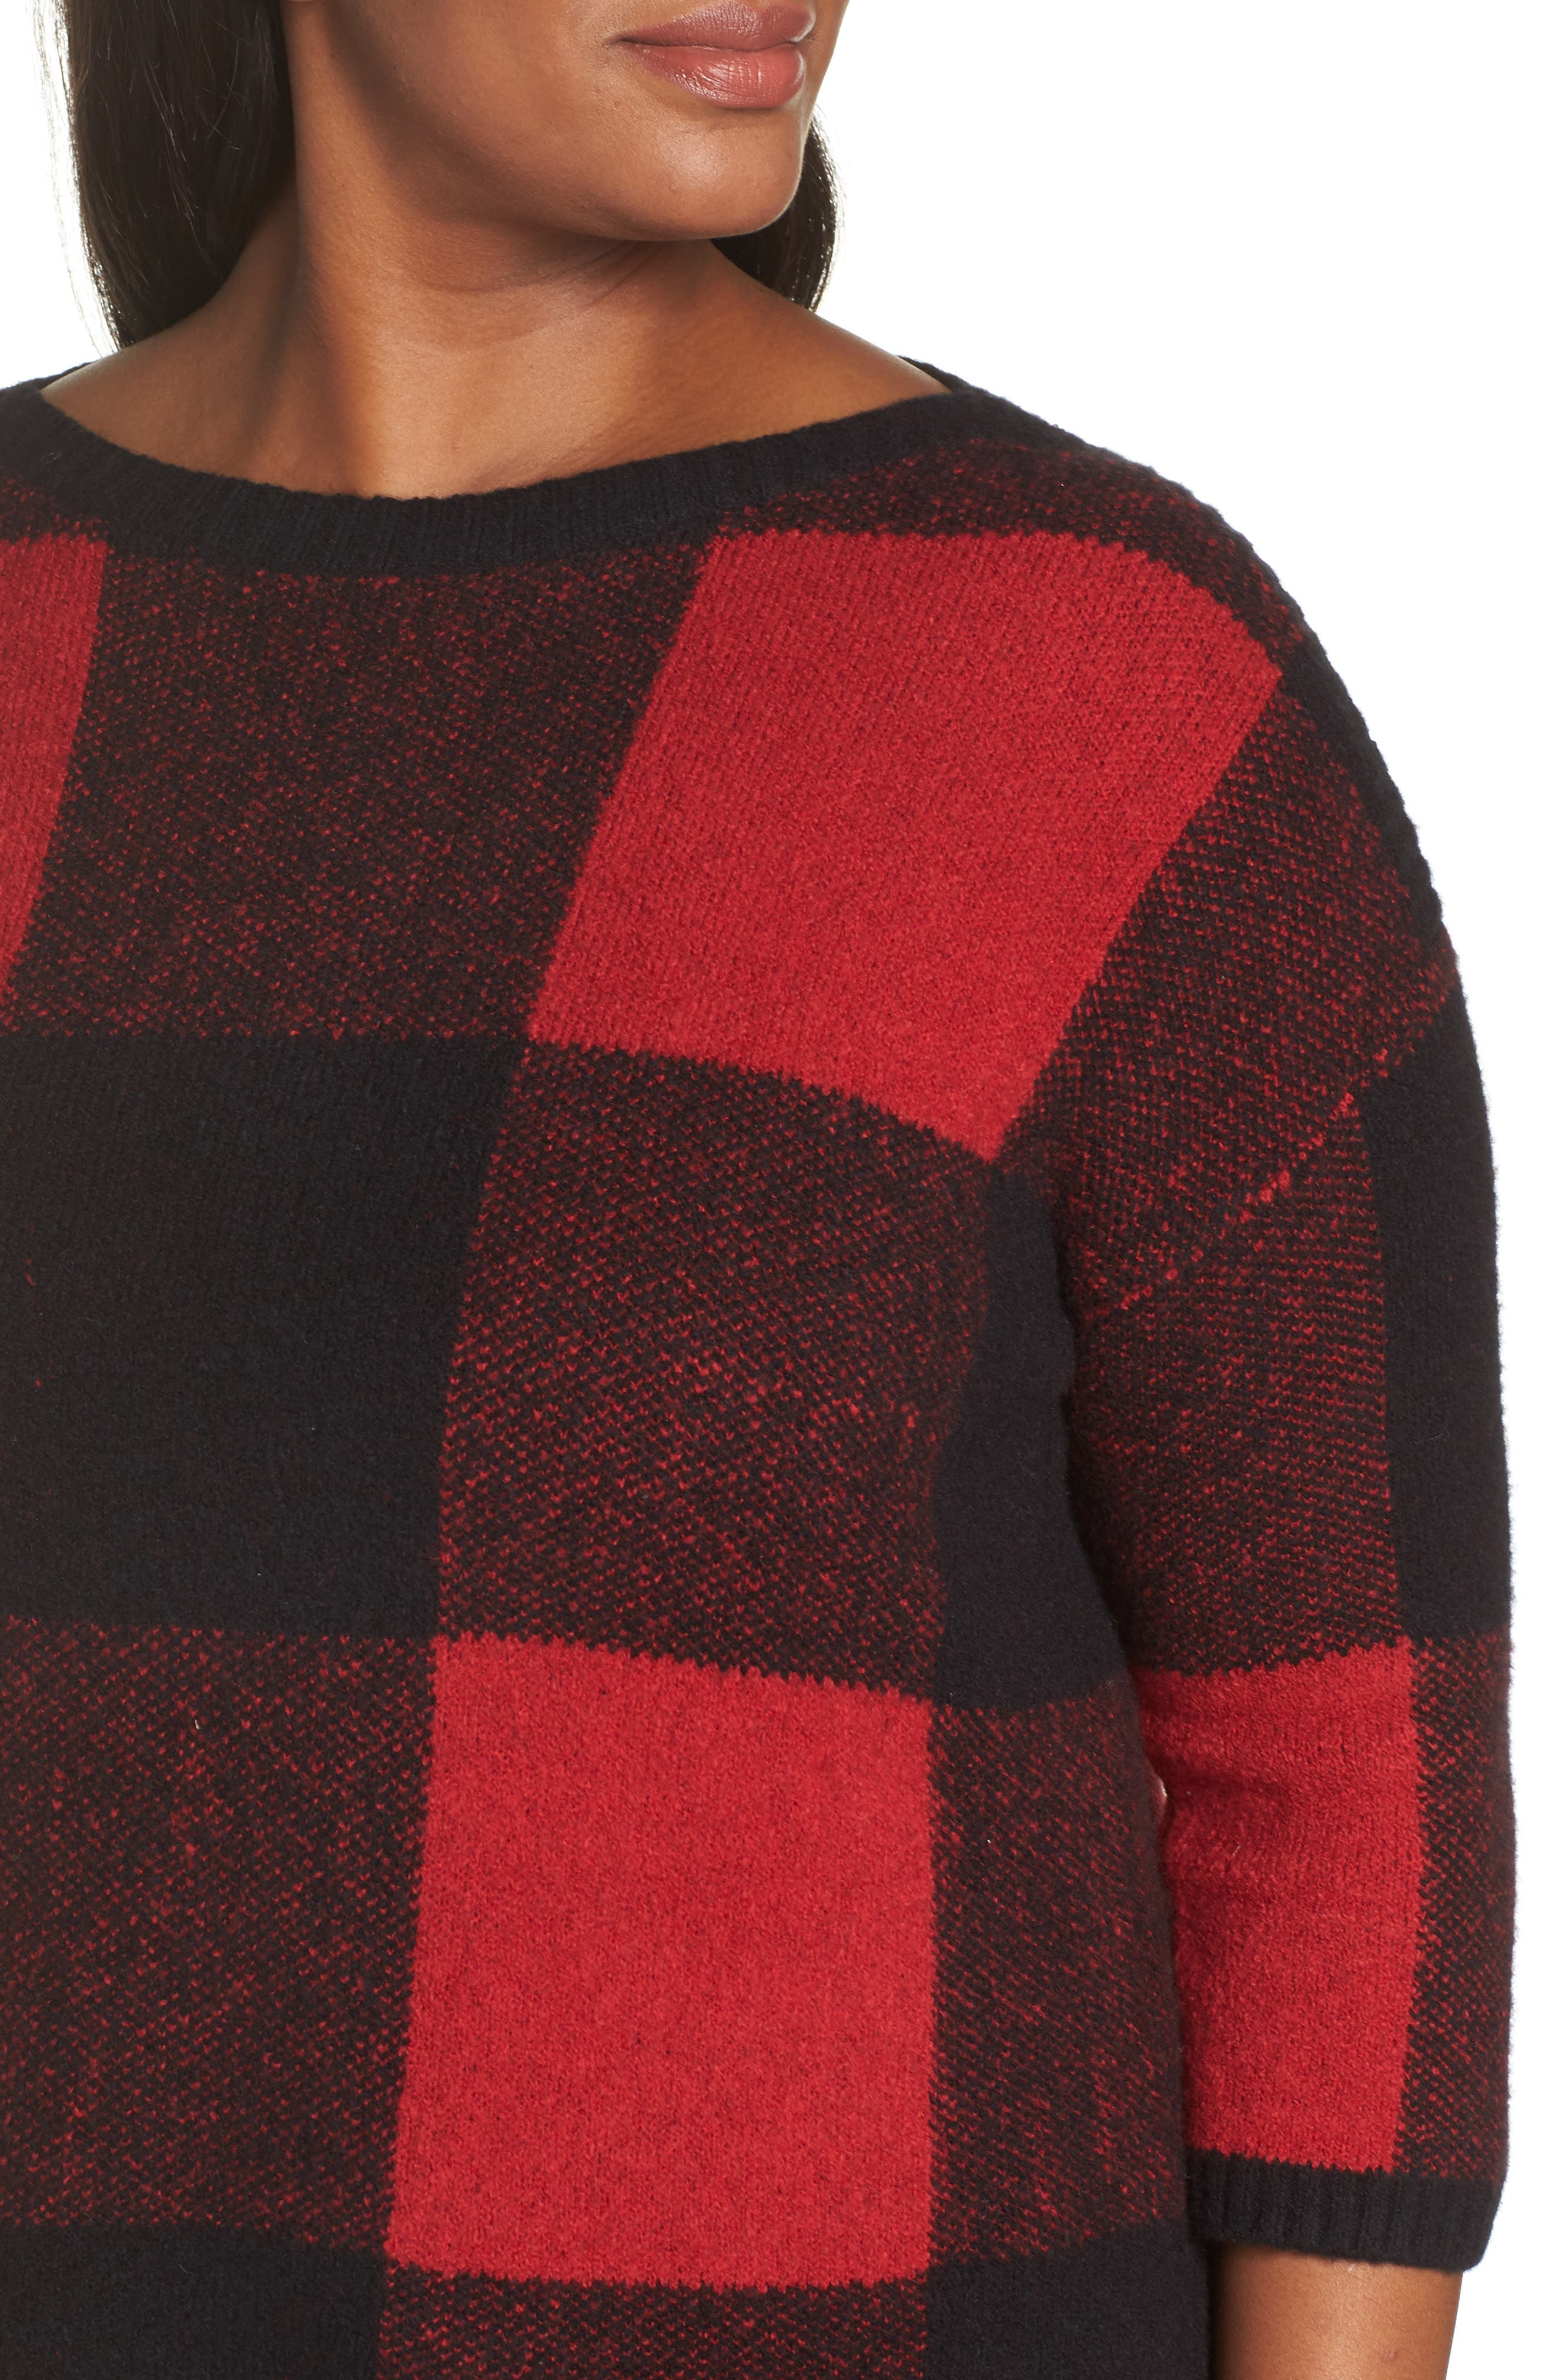 SEJOUR, Buffalo Plaid Sweater, Alternate thumbnail 4, color, BLACK-RED BUFFALO CHECK